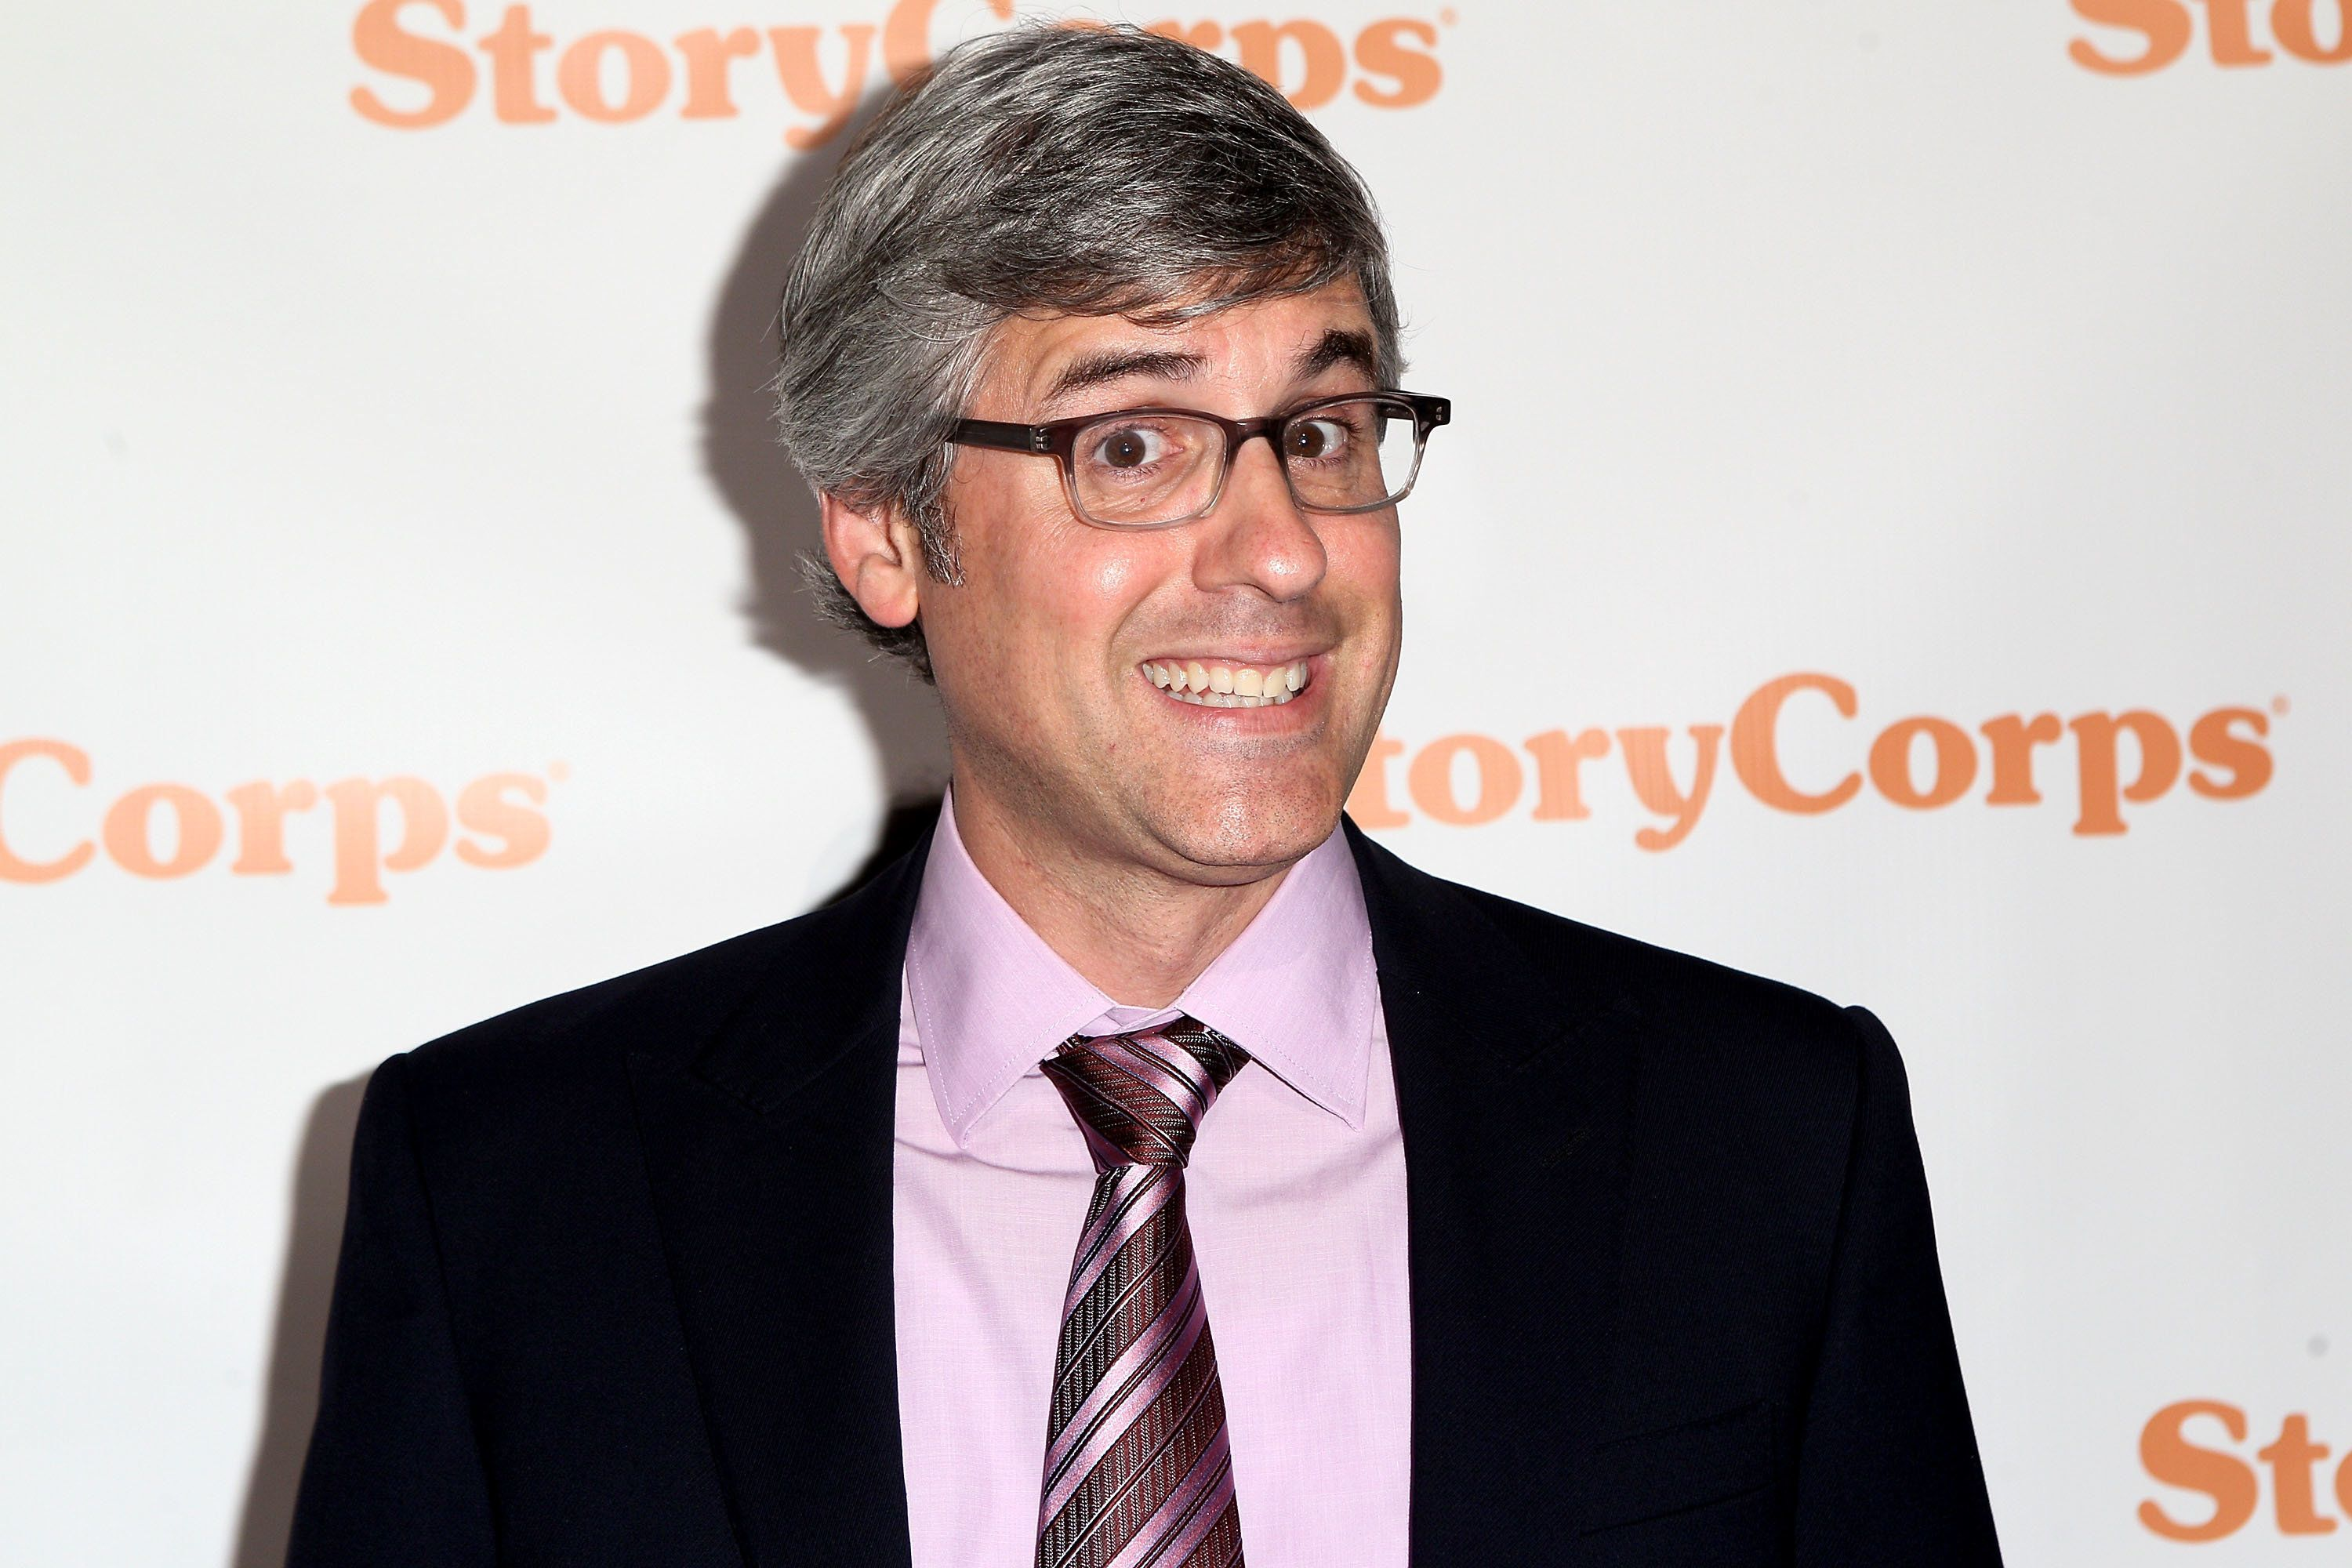 NEW YORK, NY - SEPTEMBER 29:  Mo Rocca attends StoryCorps Annual Gala at Capitale on September 29, 2015 in New York City.  (Photo by Steve Mack/Getty Images)